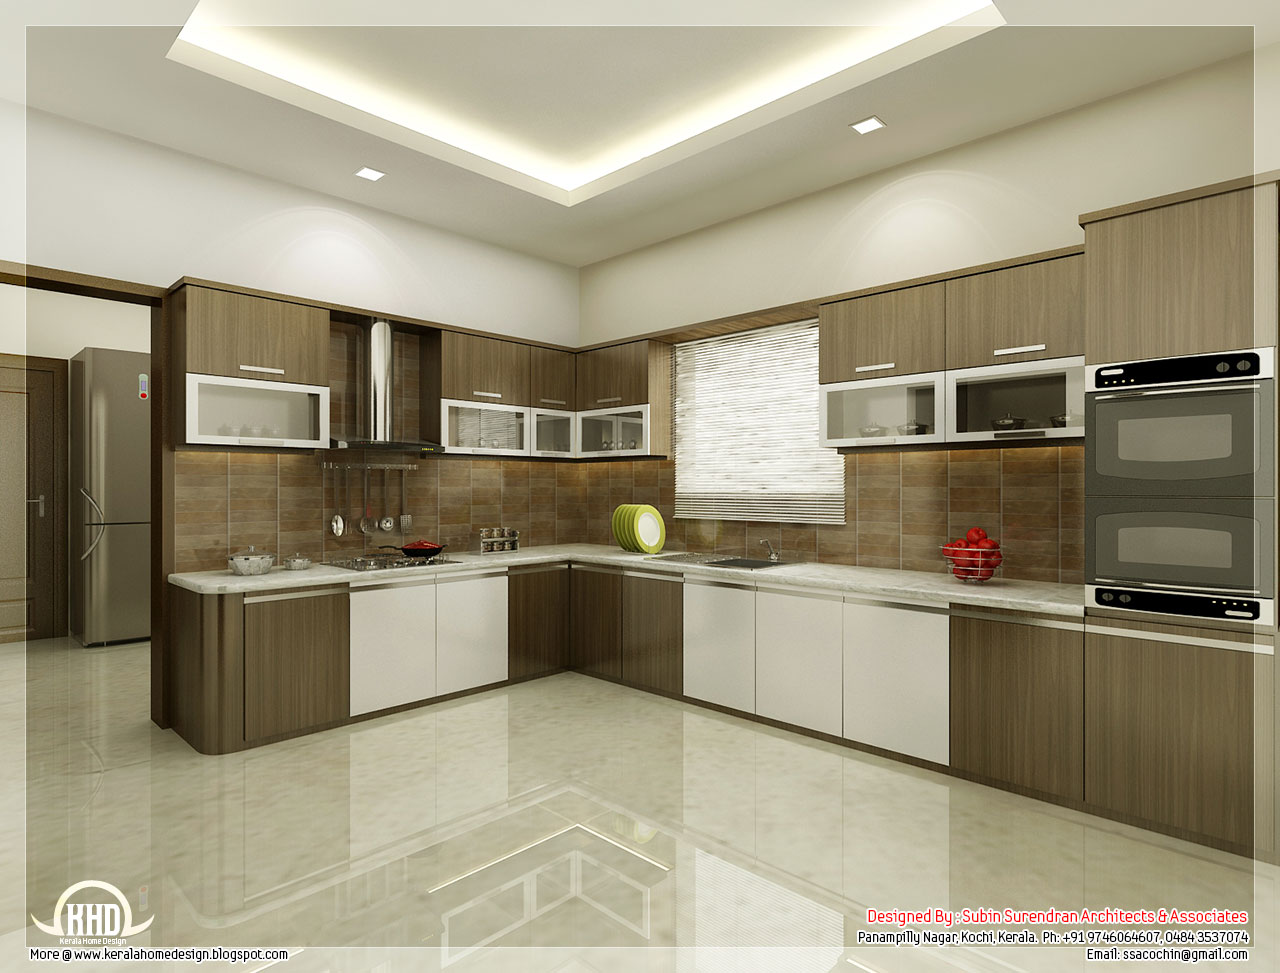 interior design kitchen room october 2013 architecture house plans 1507